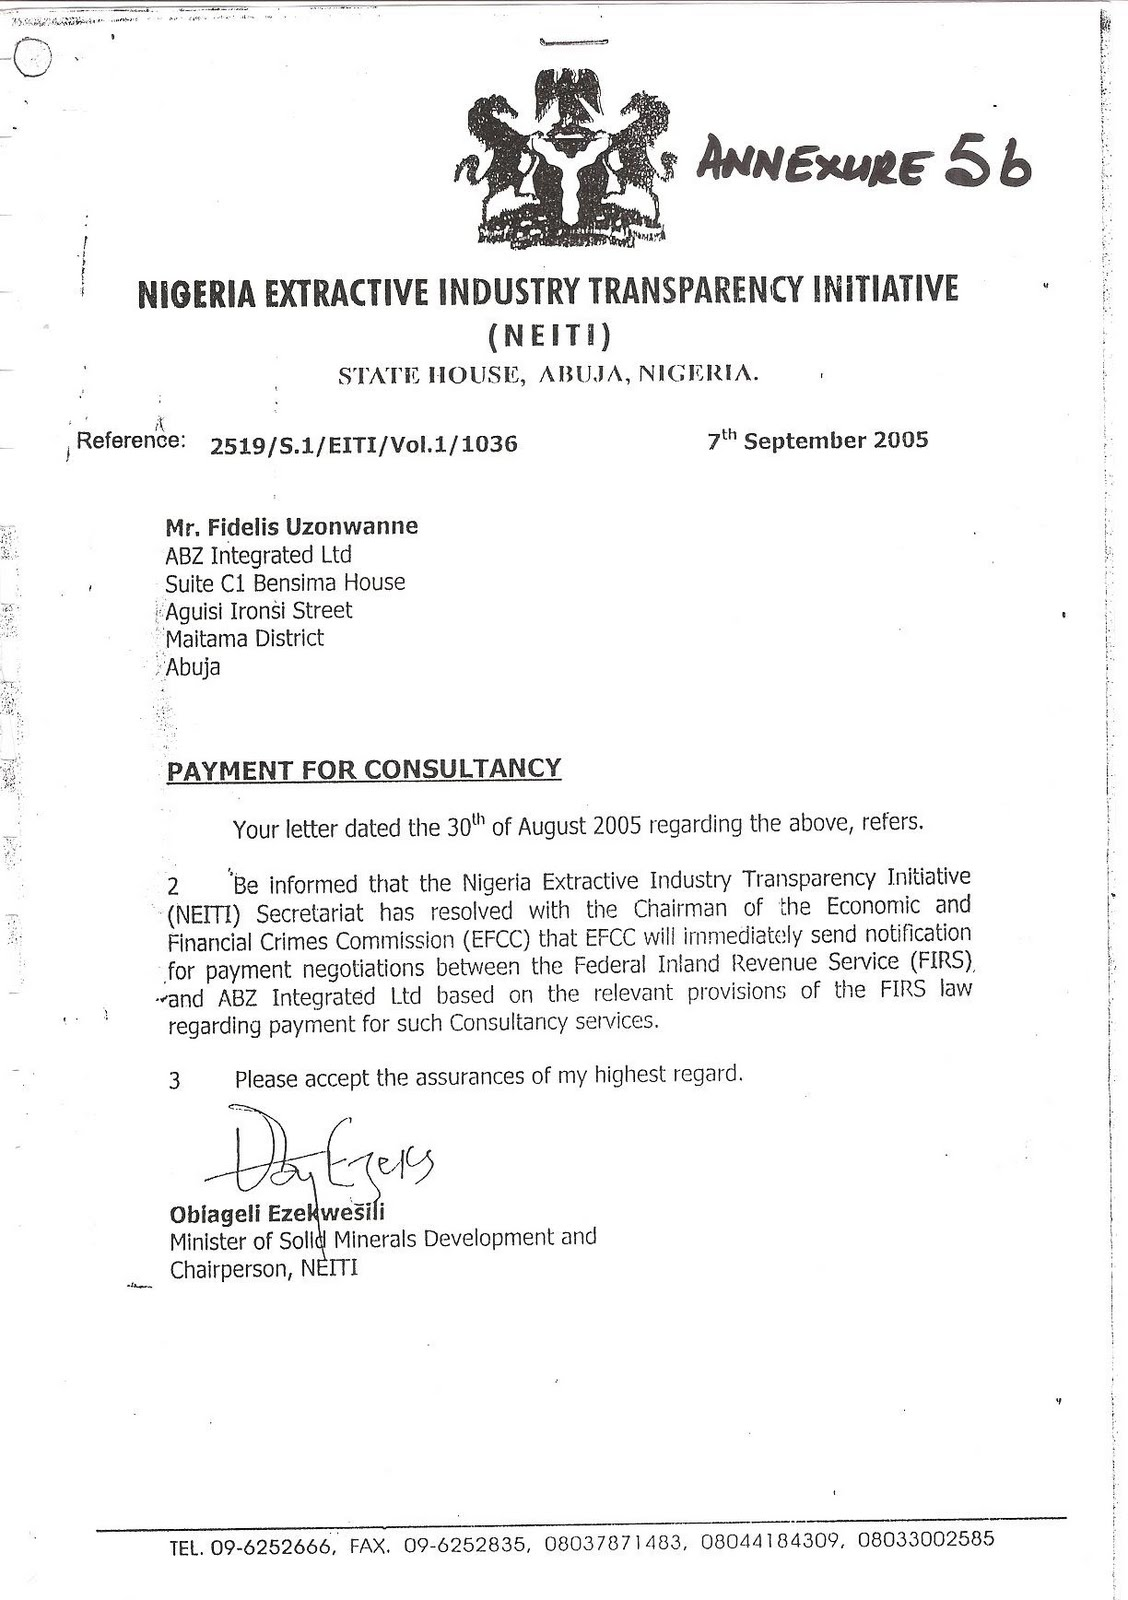 Recall that field work on the abzs investigation of chevron under efcc committee on government revenue fraud was done between december 2003 and january